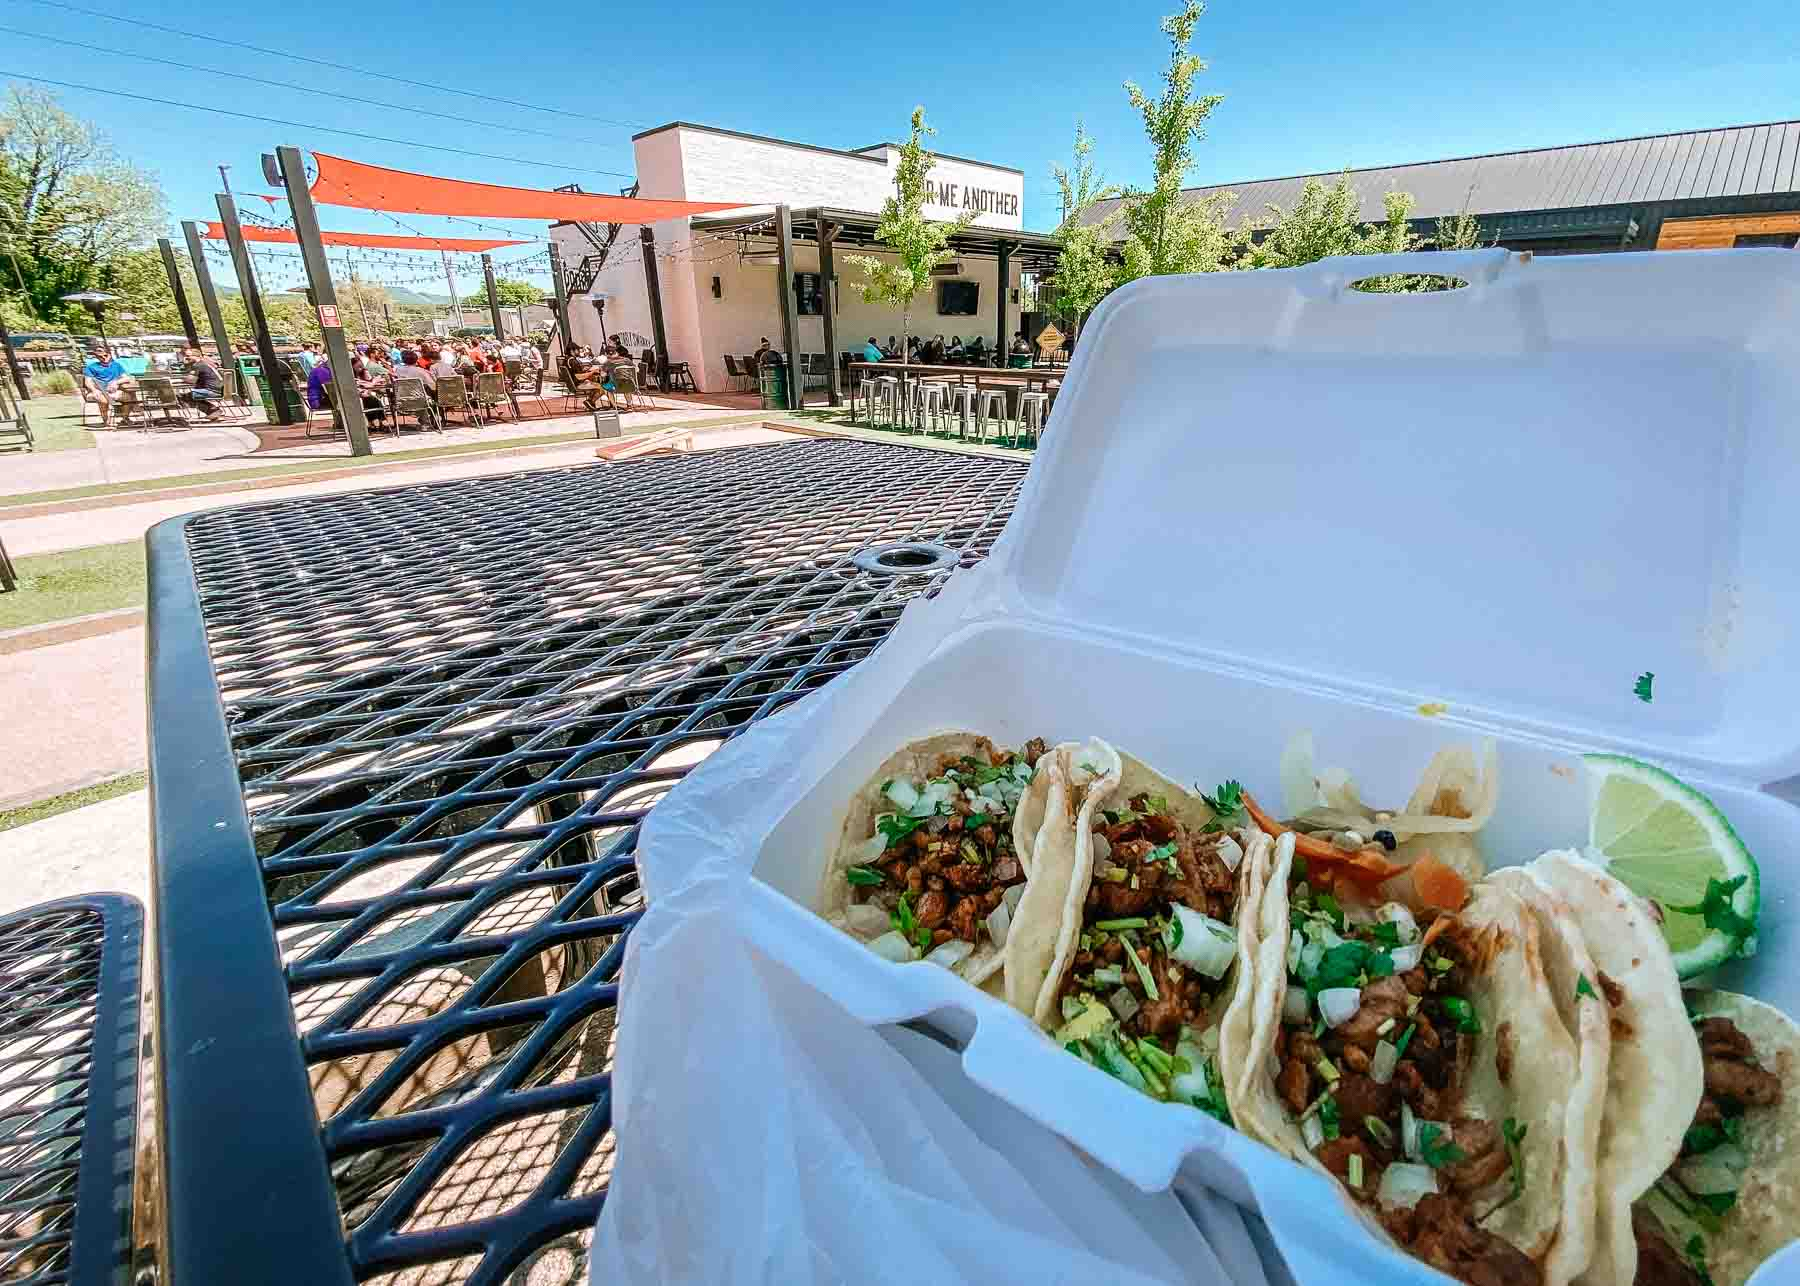 Patio dining at the Stovehouse in Huntsville, Alabama. There are 4 chicken tacos sitting on a white tray.